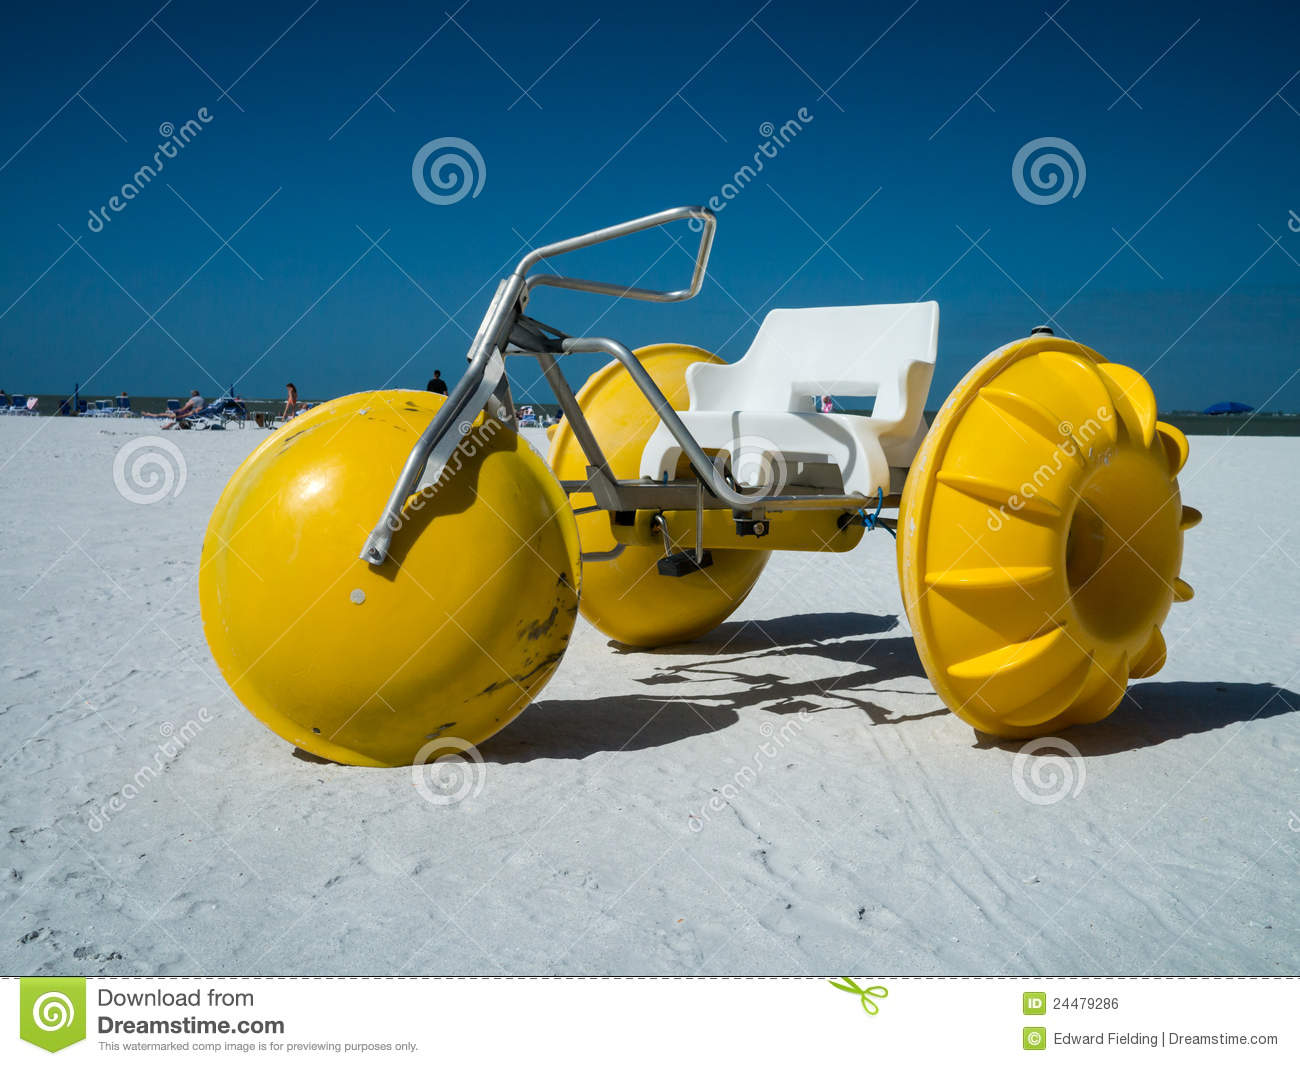 bright yellow three wheeled Pedal Boats or watercraft for rent on ...